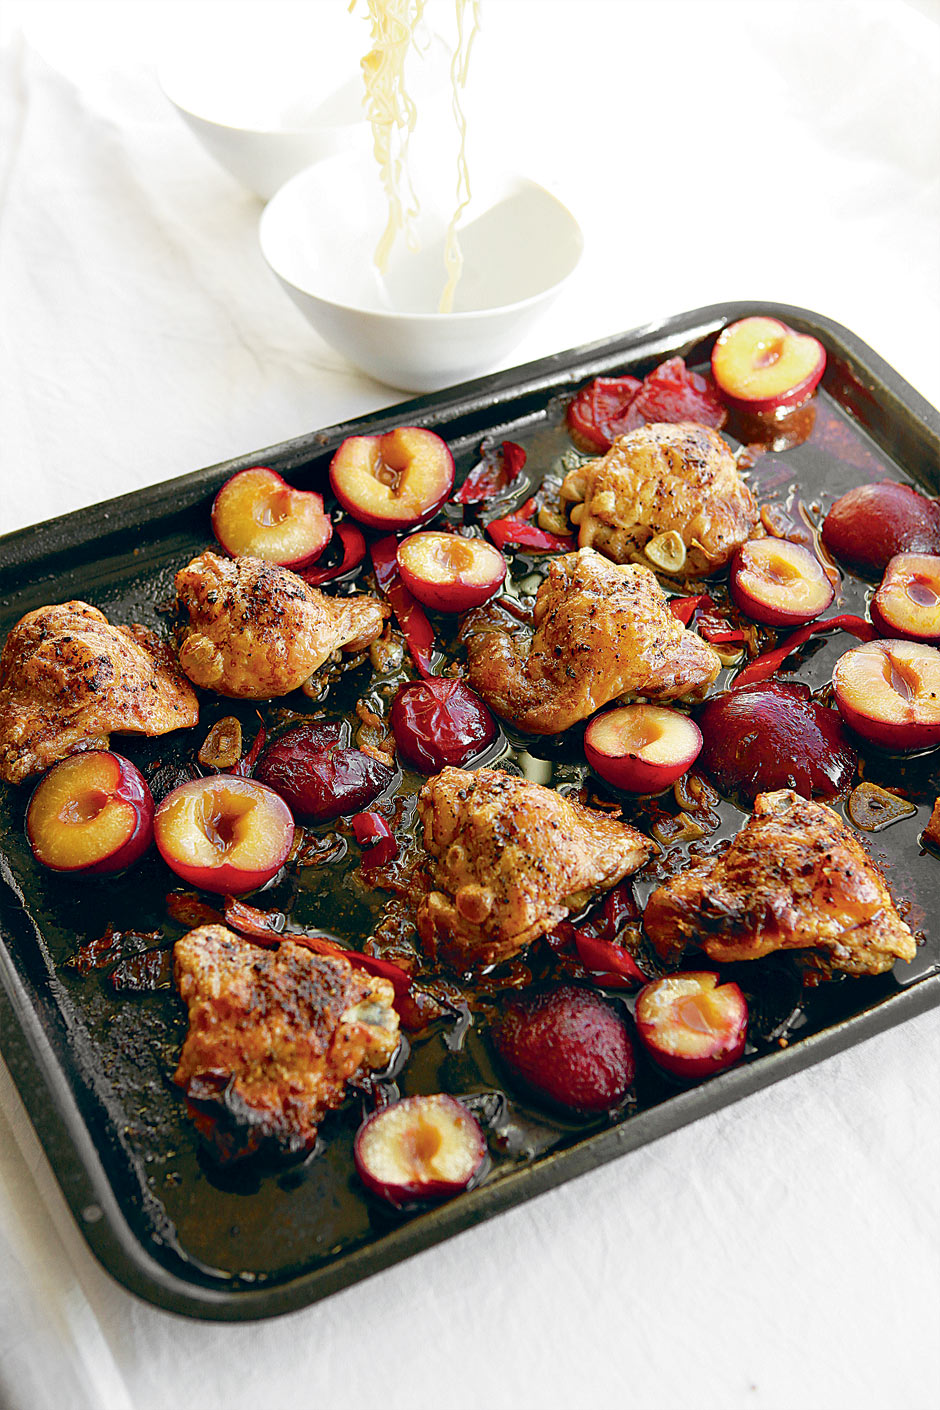 Hugh Fearnley-Whittingstall's recipe for chicken and plums with soy